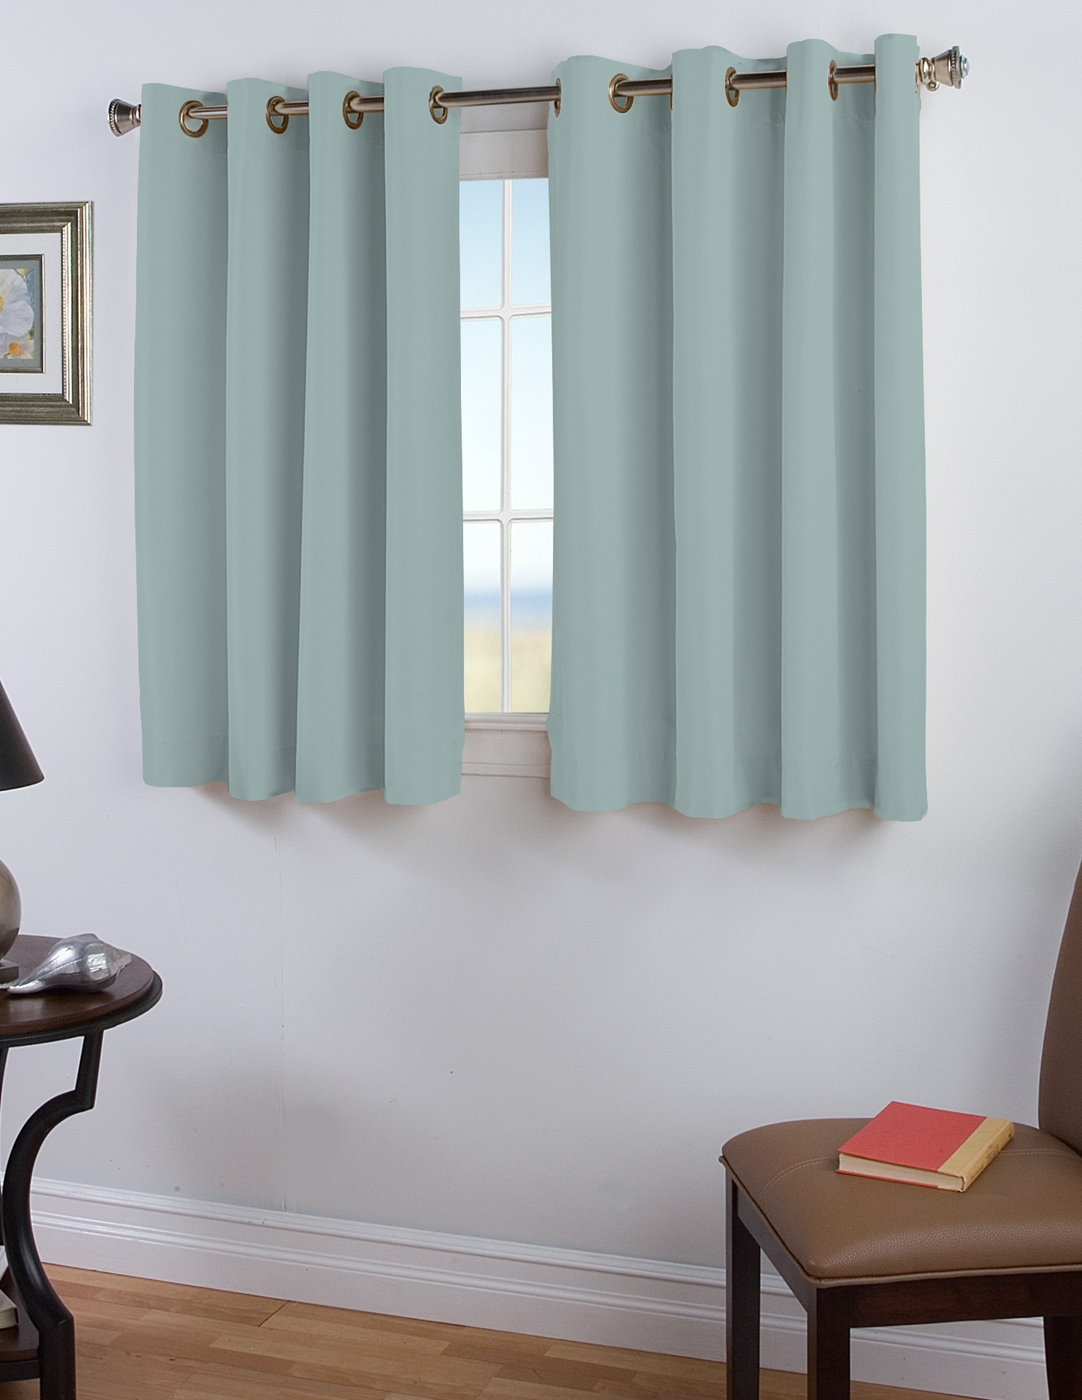 45 Inch Long Curtains Thecurtainshop For 54 Inch Long Curtain Panels (View 4 of 25)